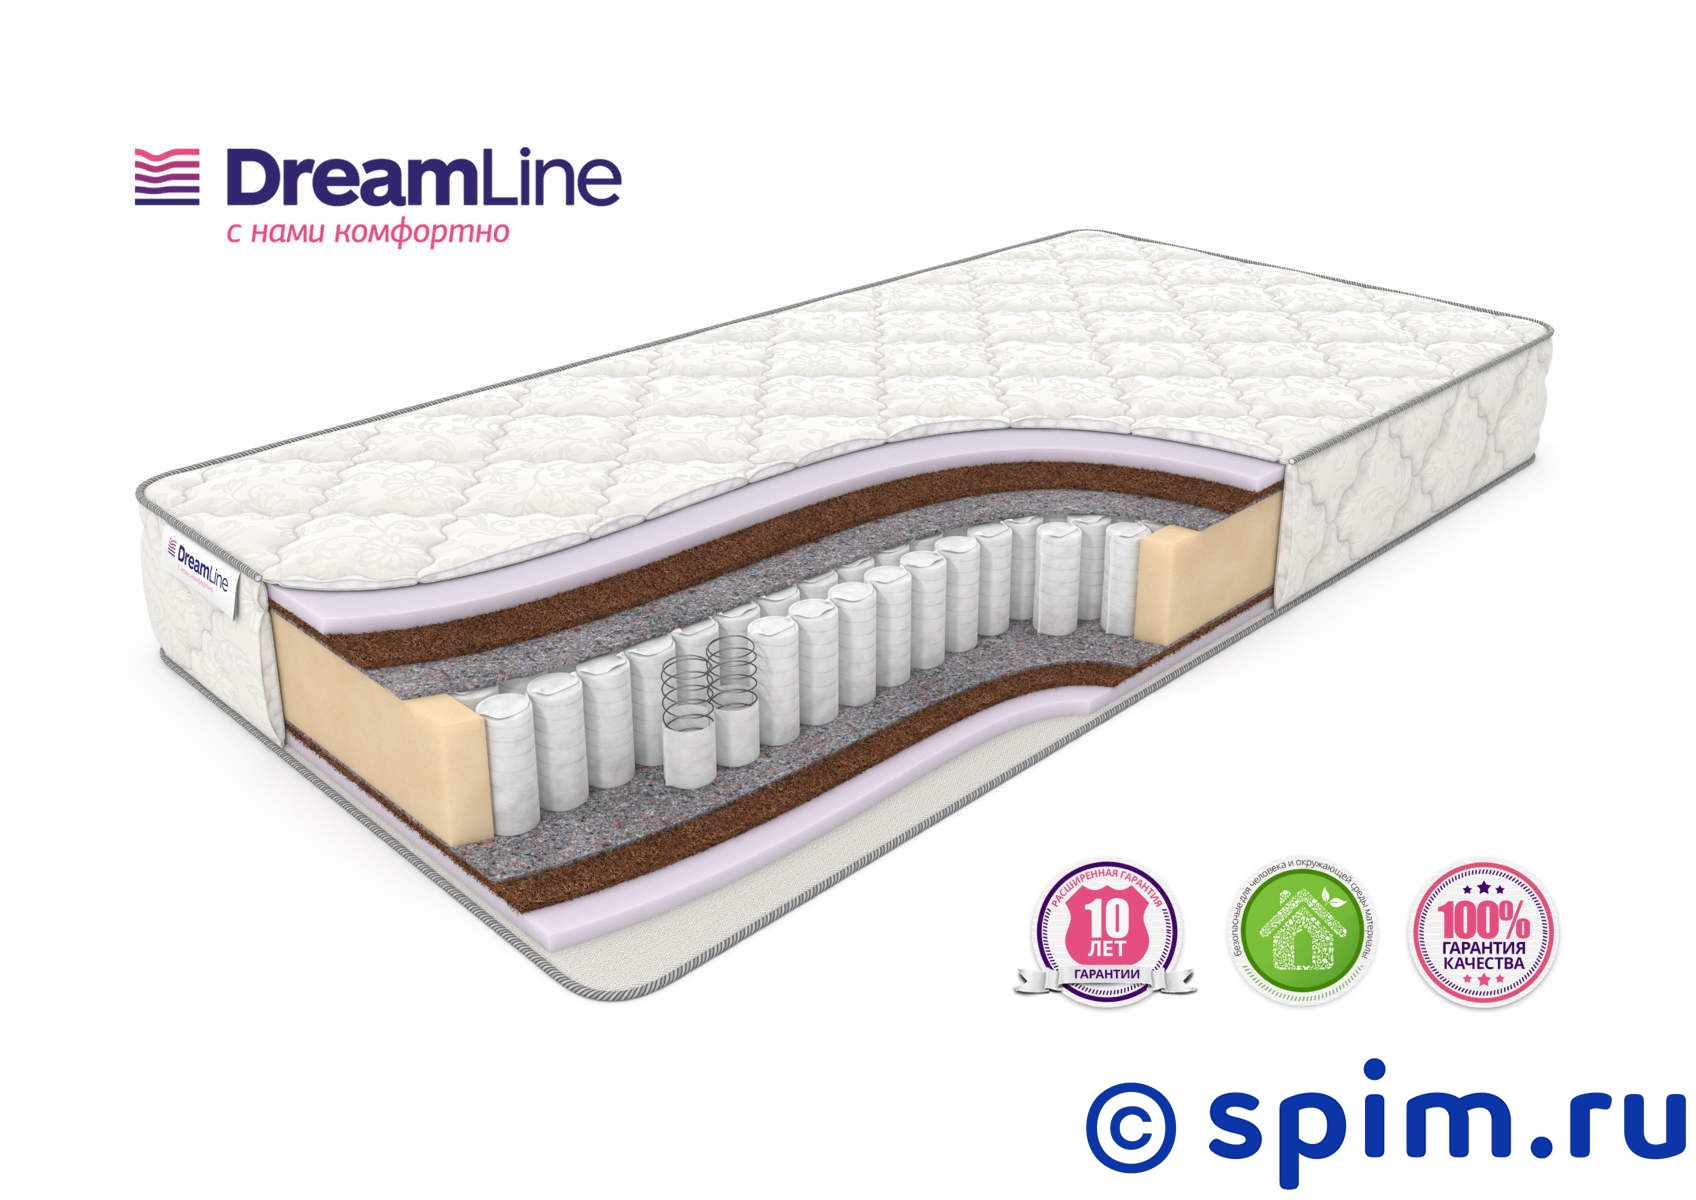 Матрас DreamLine Eco Foam Hard Tfk 180х190 см